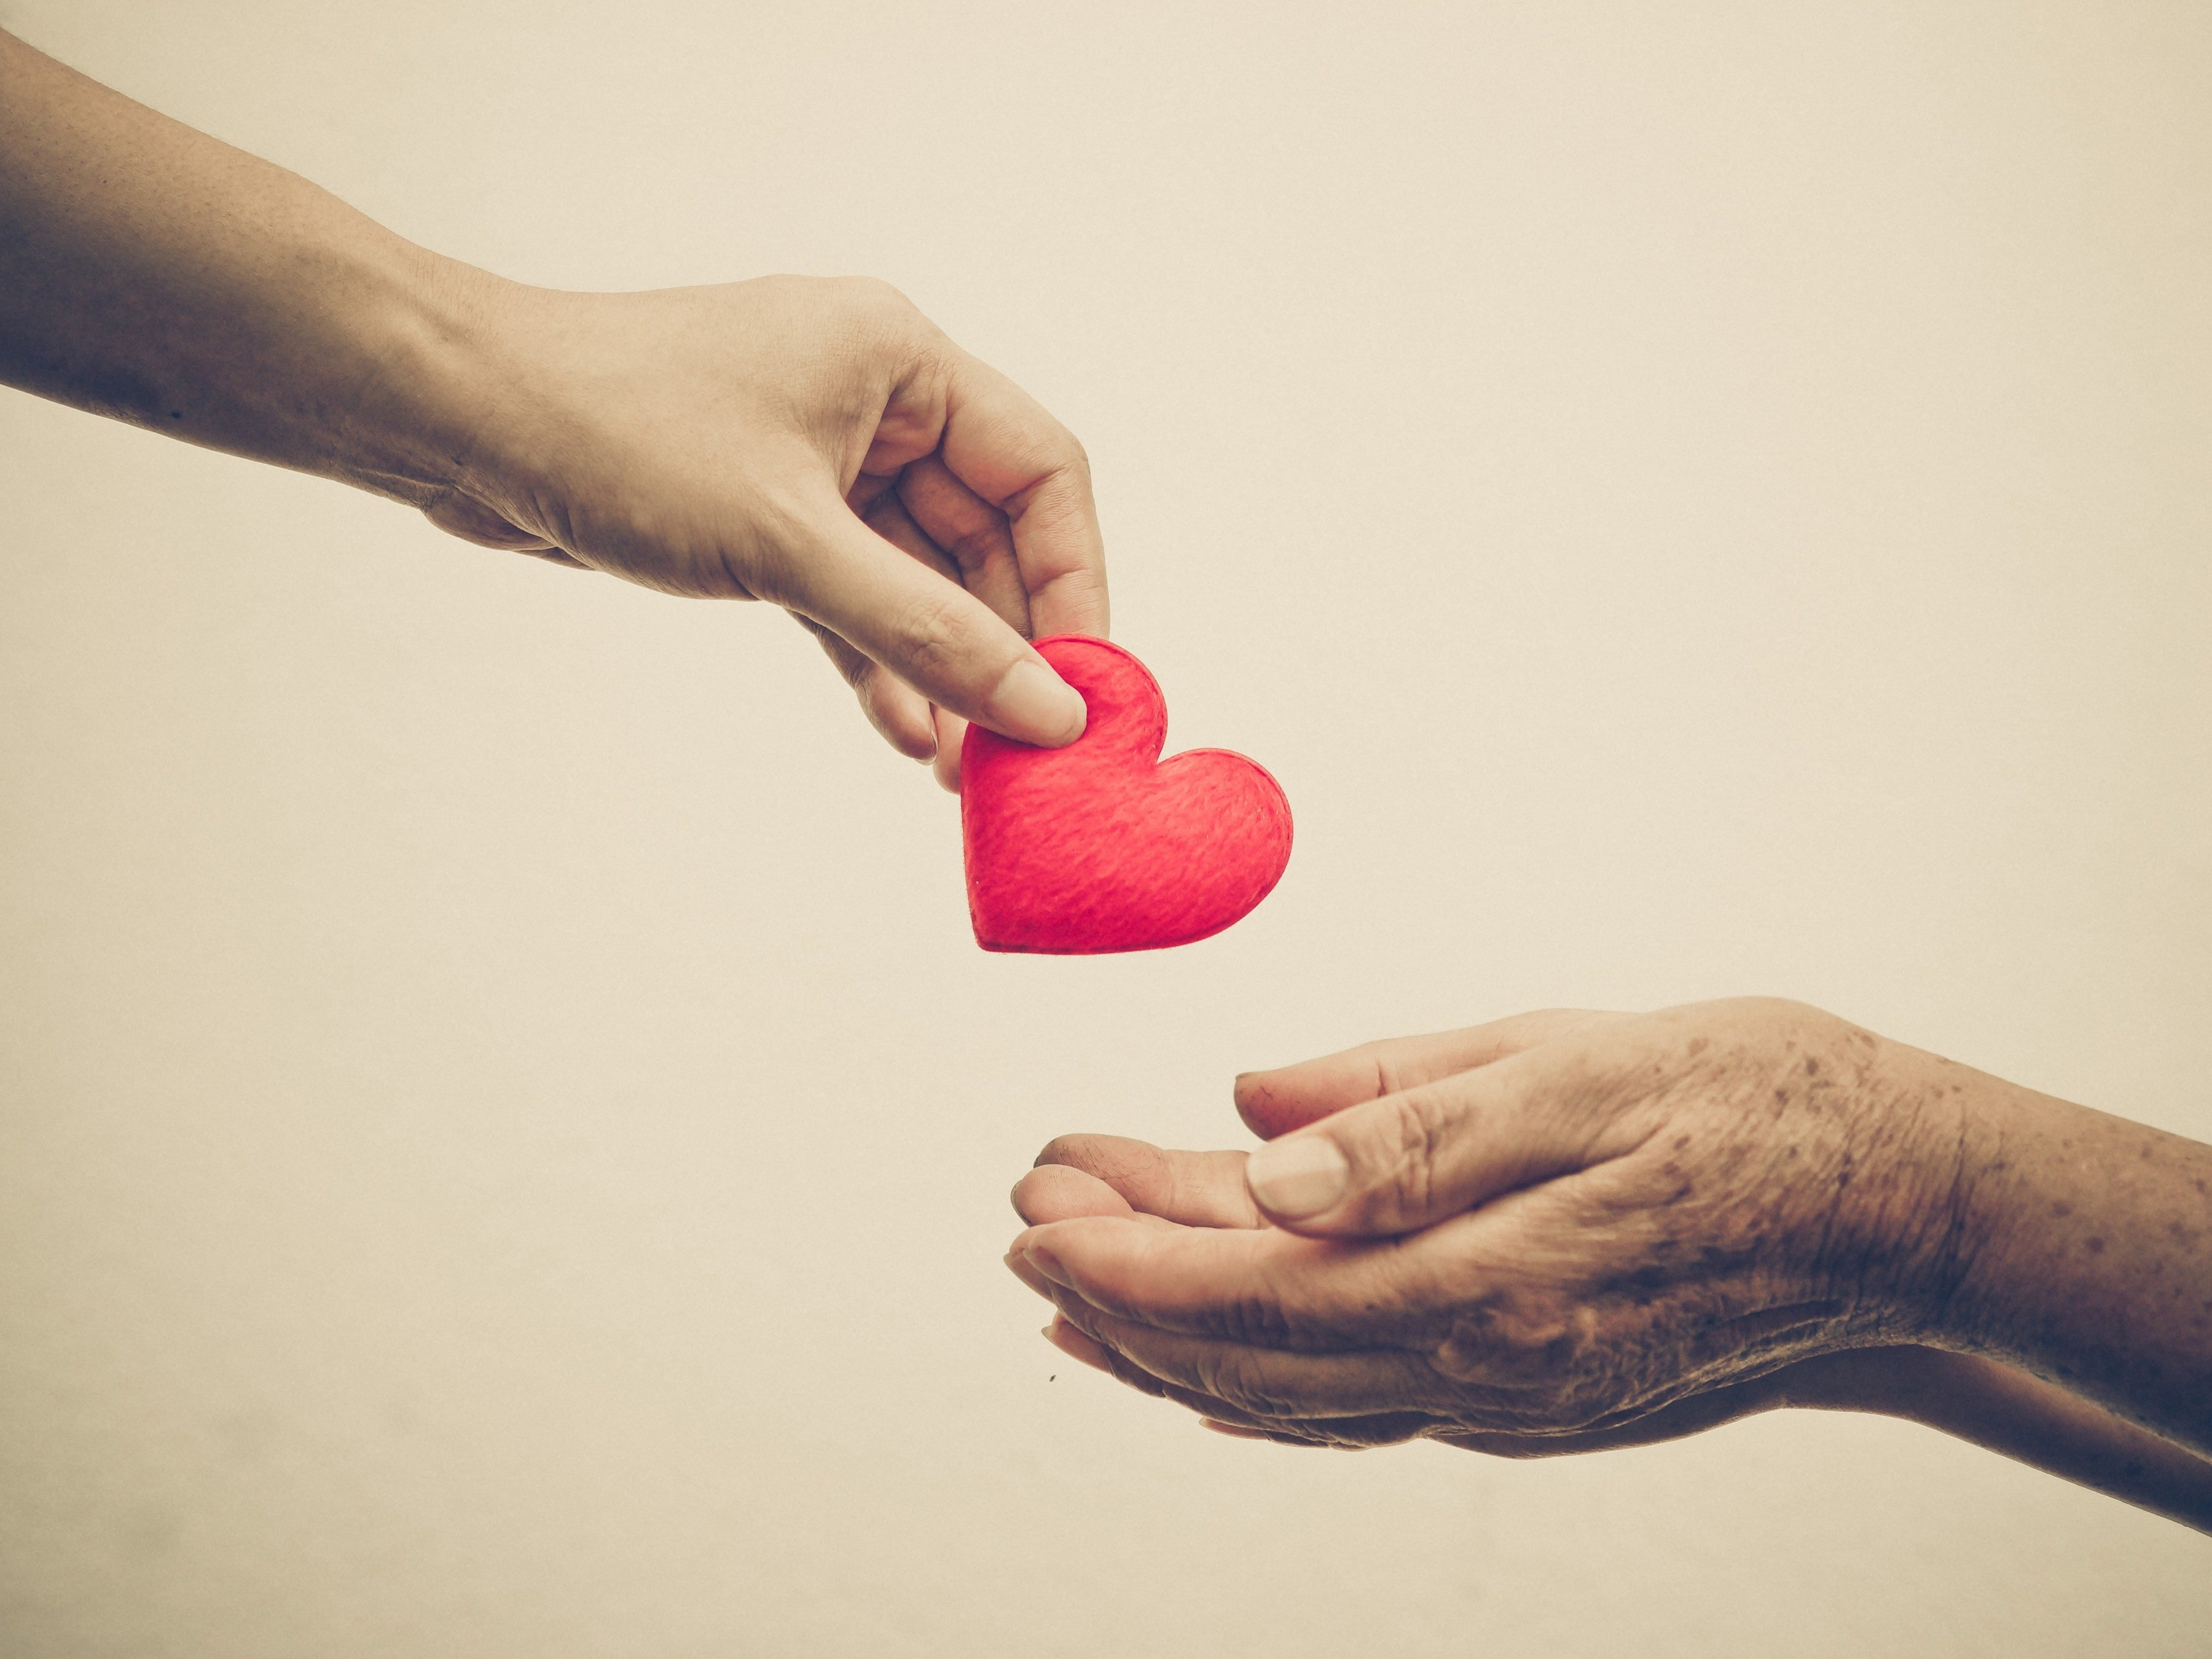 How to cultivate compassion